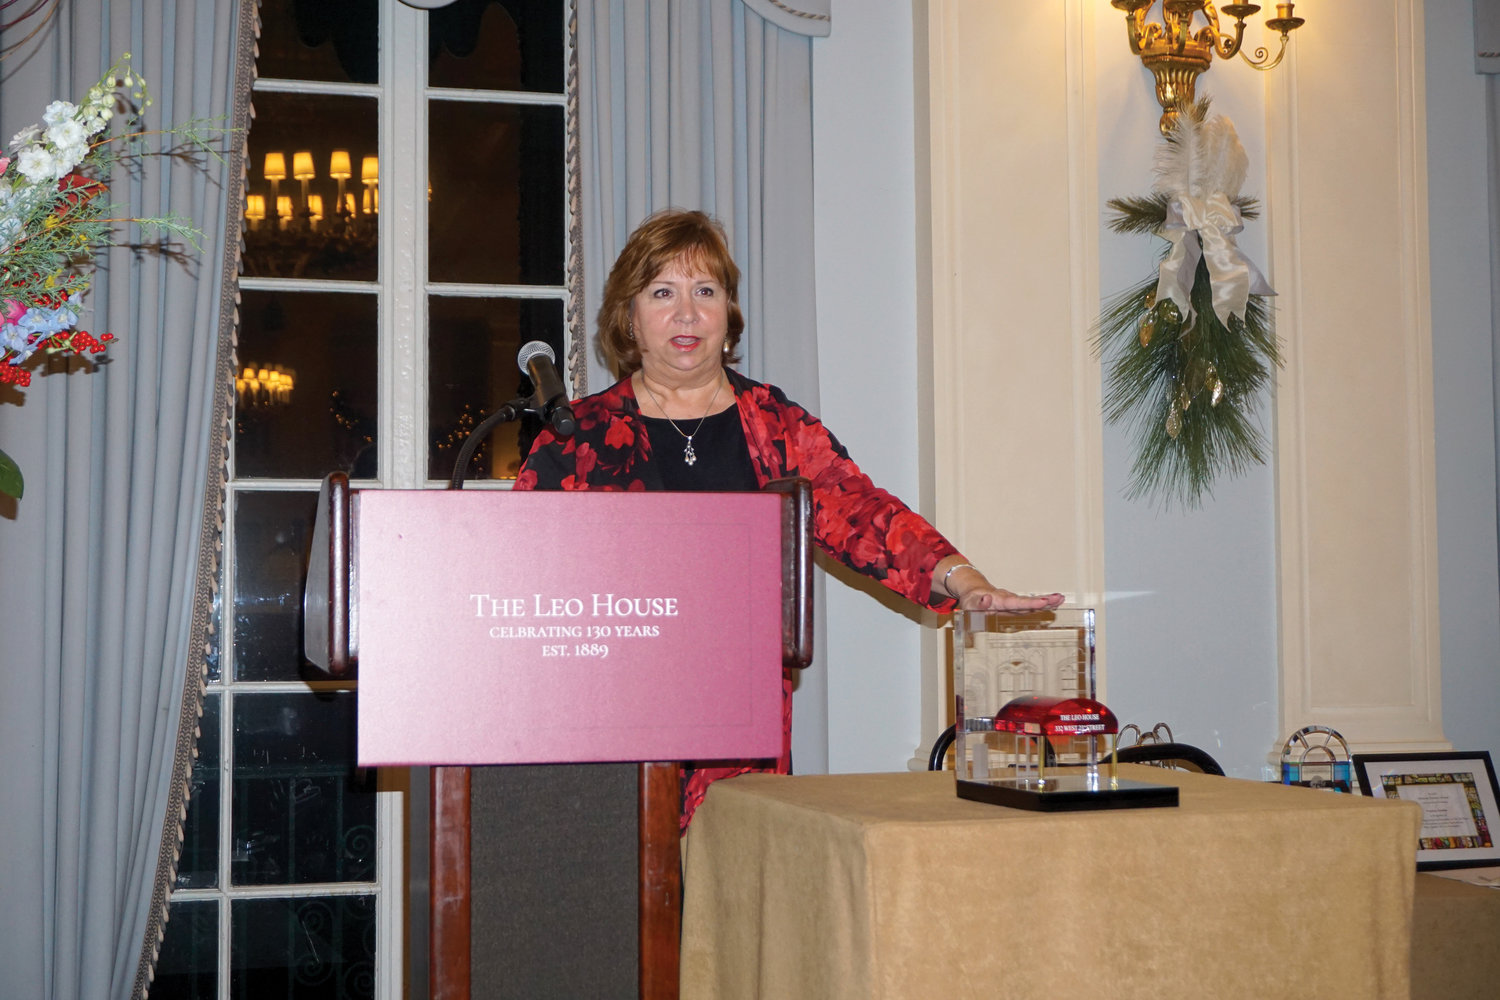 Others honored at the Dec. 9 dinner at the Yale Club in Manhattan included Catholic New York advertising representative Patricia Scanlon, who received the Mission Partner Award